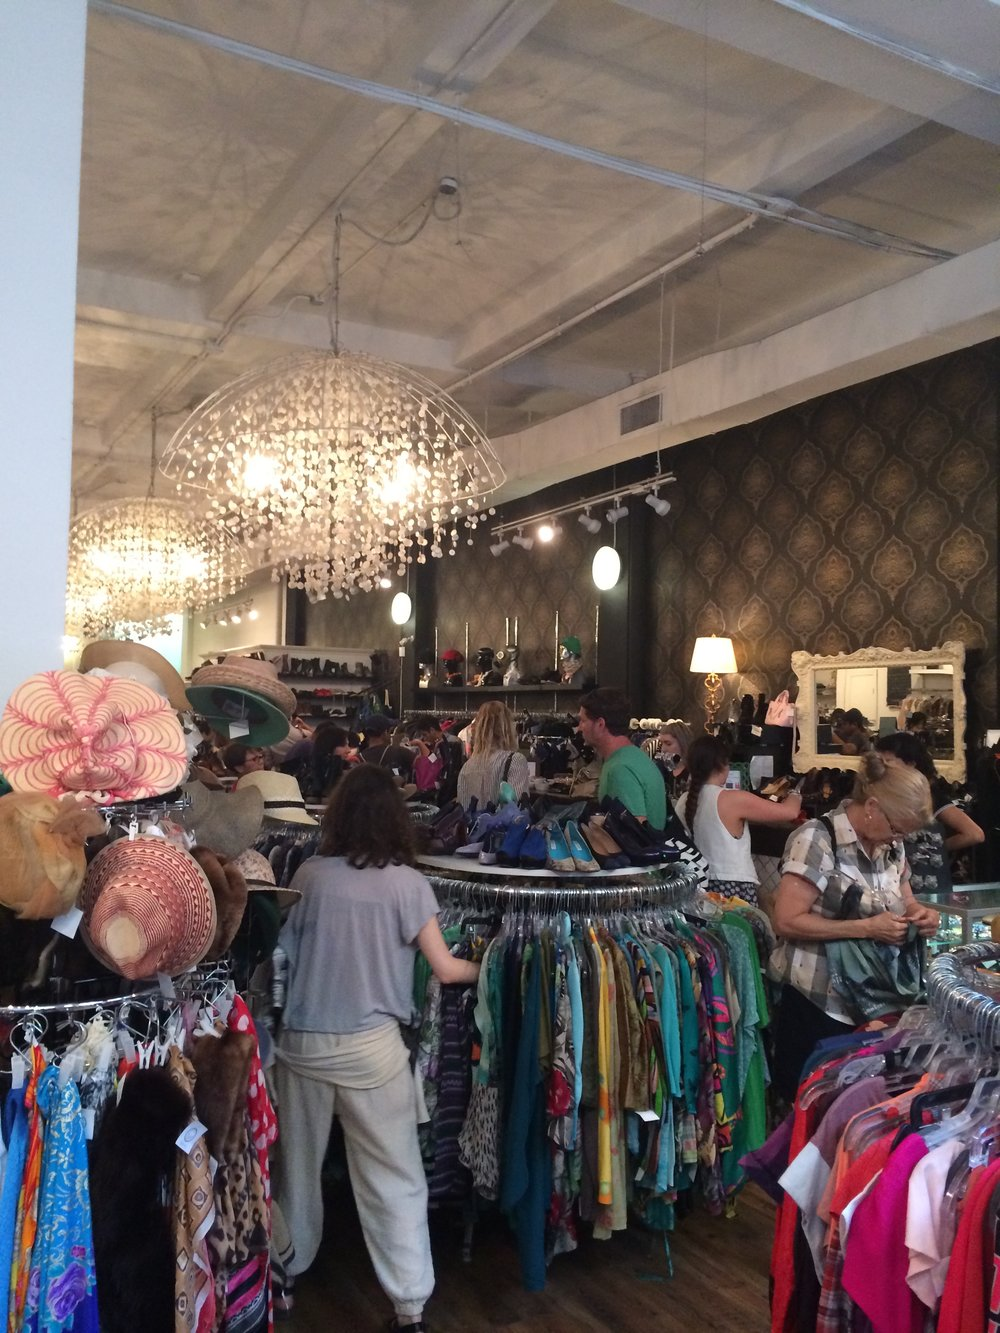 A thrift store I fell in love with in Manhattan called Beacon's Closet